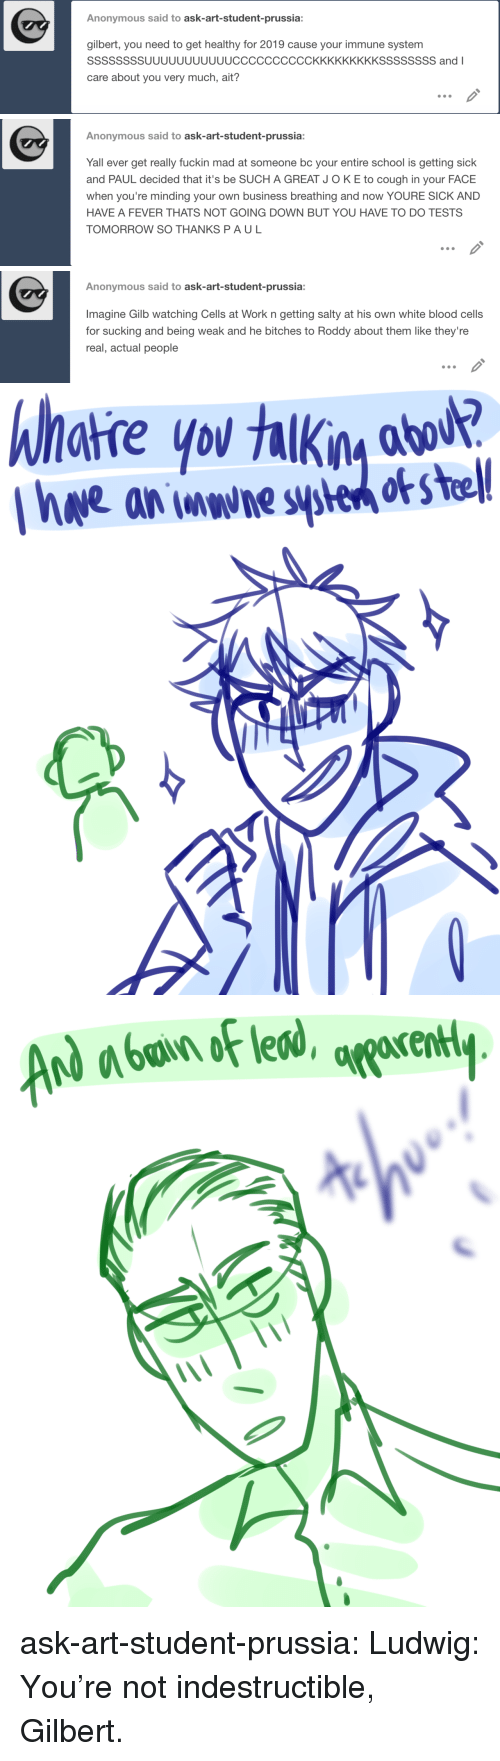 Getting Sick: Anonymous said to ask-art-student-prussia  gilbert, you need to get healthy for 2019 cause your immune system  SSSSSSSSUUUUUUUUUUUCCCCCCCCCCKKKKKKKKKSSSSSSSS andI  care about you very much, ait?   Anonymous said to ask-art-student-prussia:  Yall ever get really fuckin mad at someone bc your entire school is getting sick  and PAUL decided that it's be SUCH A GREAT JOKE to cough in your FACE  when you're minding your own business breathing and now YOURE SICK AND  HAVE A FEVER THATS NOT GOING DOWN BUT YOU HAVE TO DO TESTS  TOMORROW SO THANKS PAUL   Anonymous said to ask-art-student-prussia:  Imagine Gilb watching Cells at Work n getting salty at his own white blood cells  for sucking and being weak and he bitches to Roddy about them like they're  real, actual people   hhatre yo  Ihwe an wwhe sye o s tel! ask-art-student-prussia:  Ludwig: You're not indestructible, Gilbert.